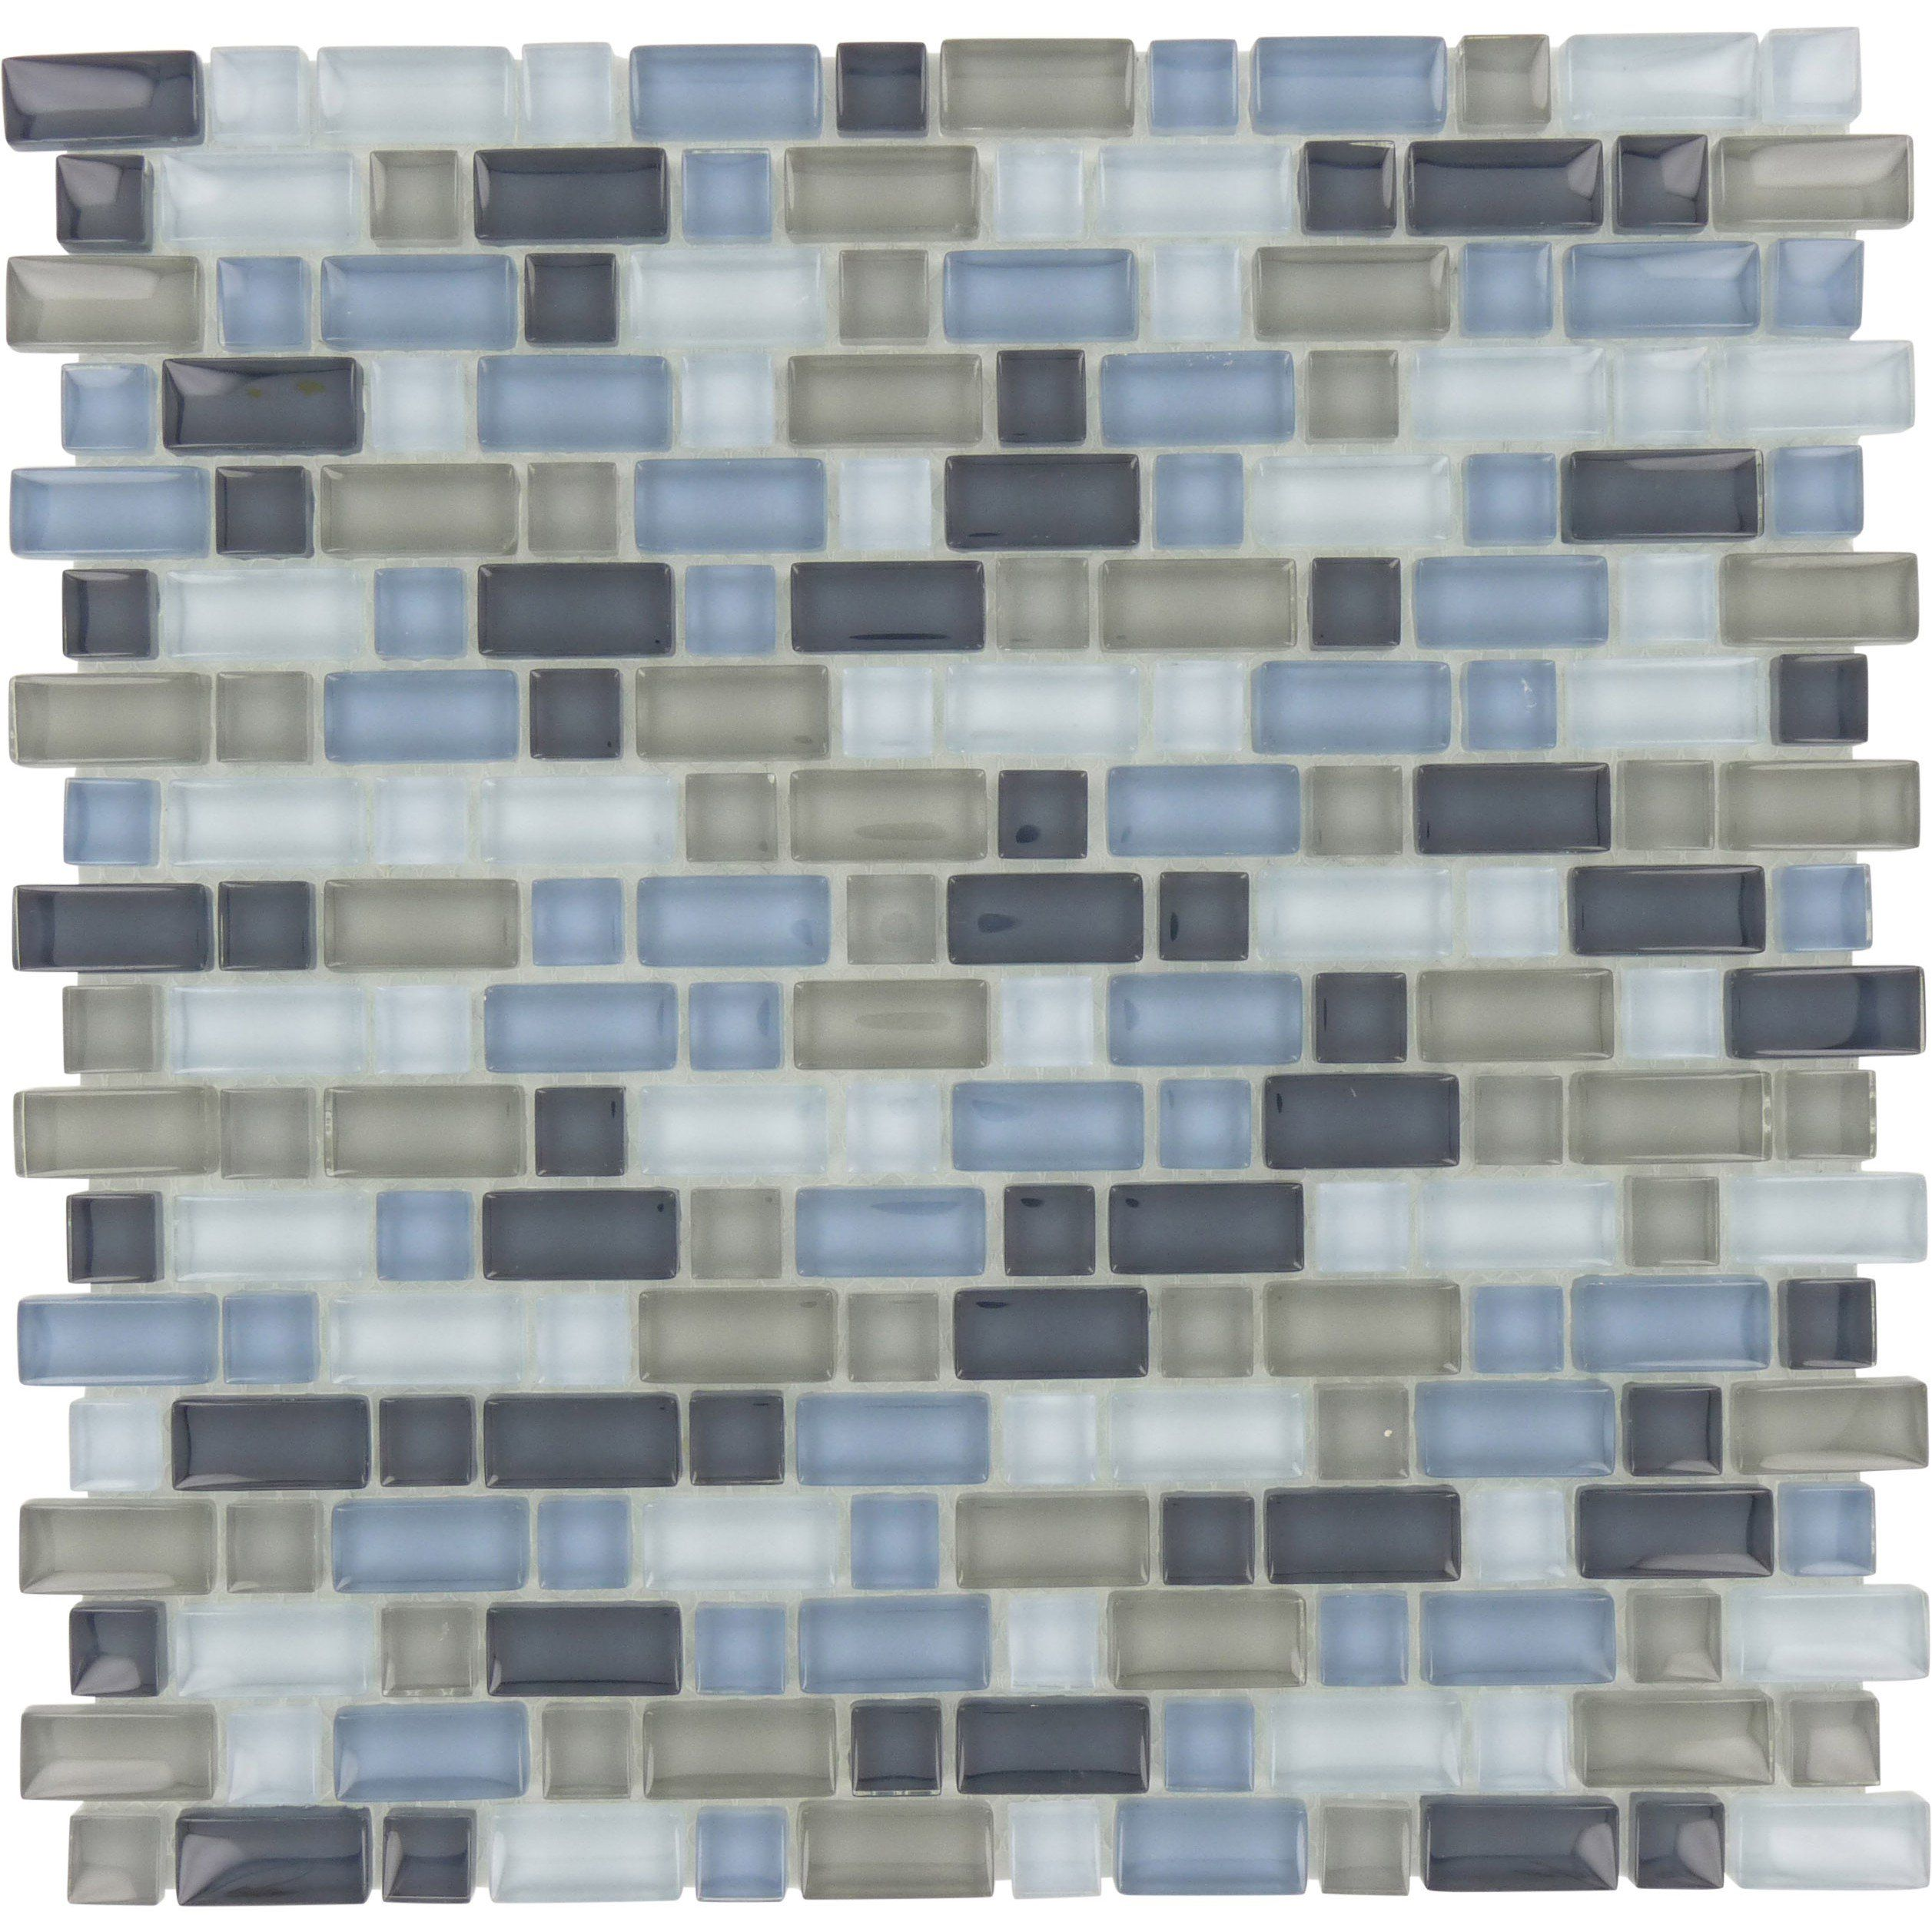 Sheet Size 12 X 12 Tile Size Variable Tile Thickness 1 4 Nominal Grout Joints 1 8 Sheet Mount Mesh Backed Glass Tile Tiles Mosaic Tile Sheets